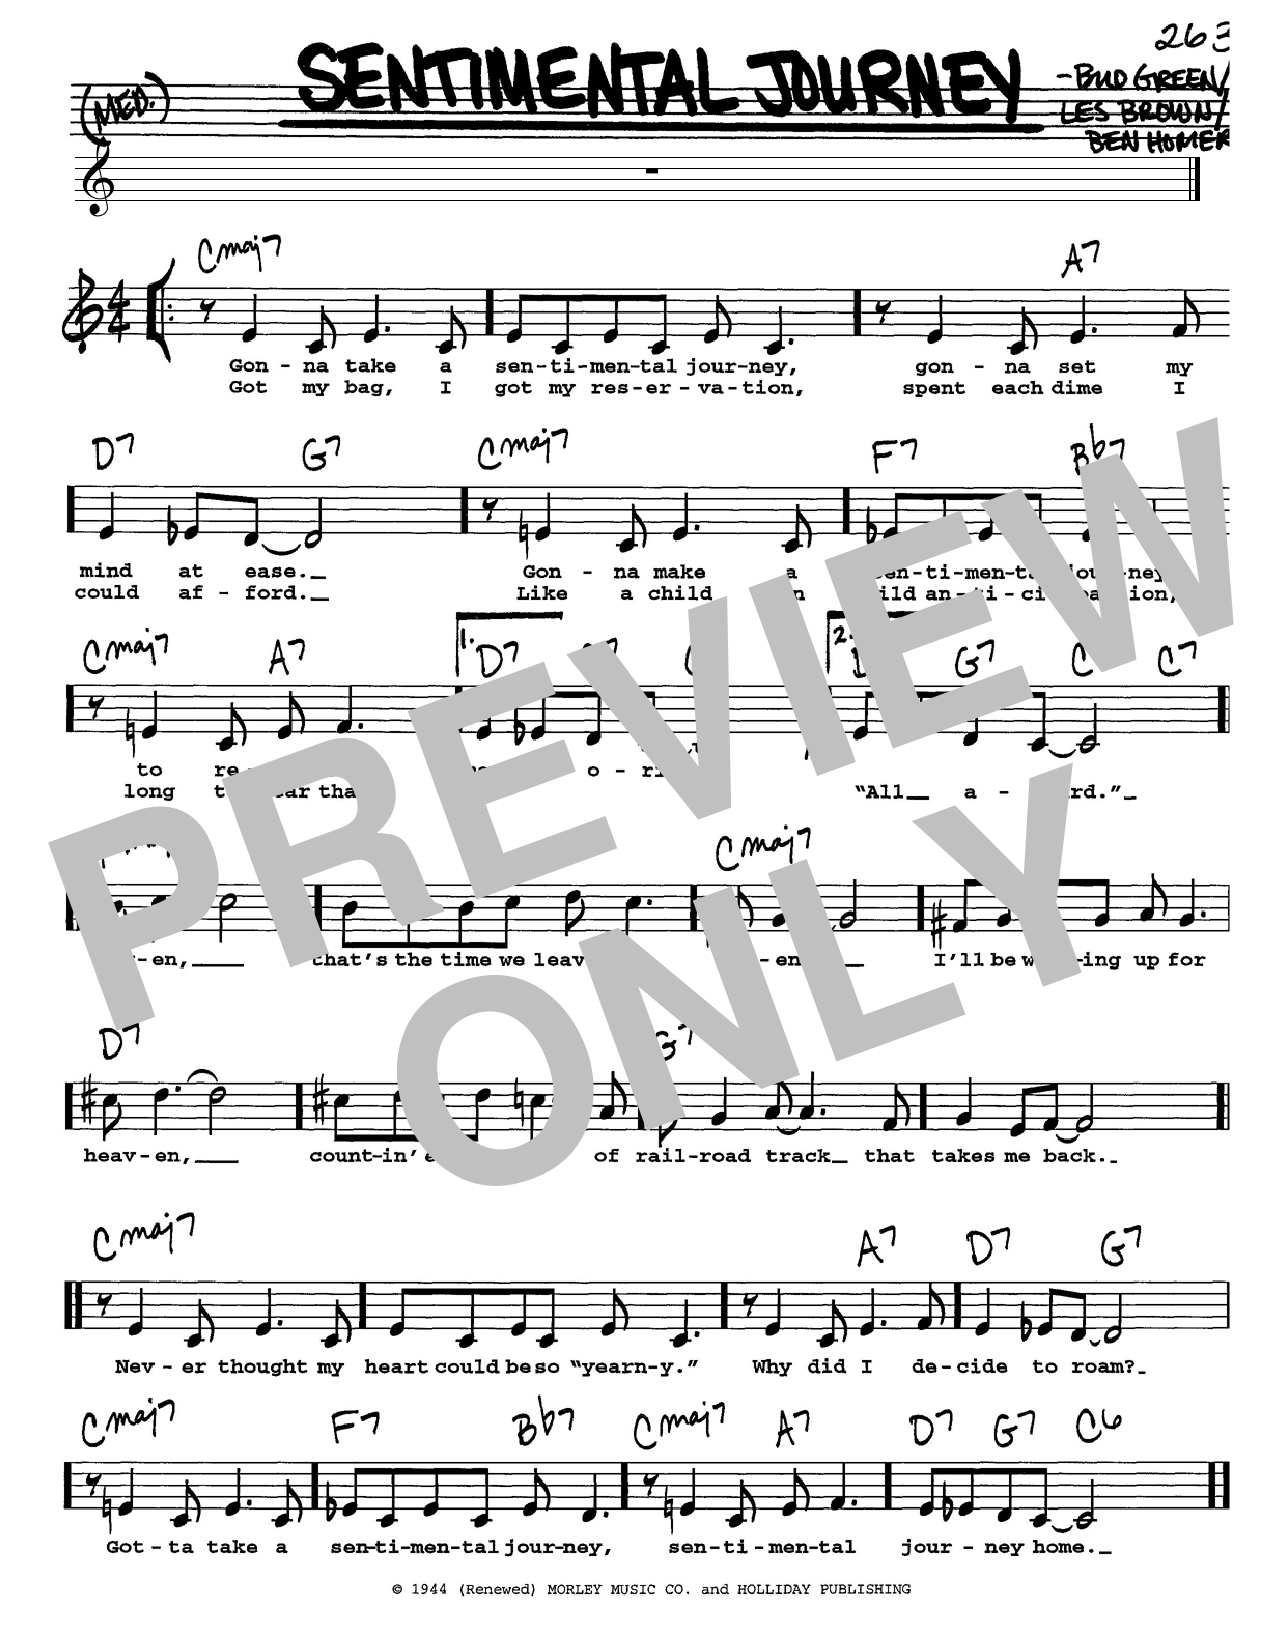 Bud Green Sentimental Journey sheet music notes and chords. Download Printable PDF.